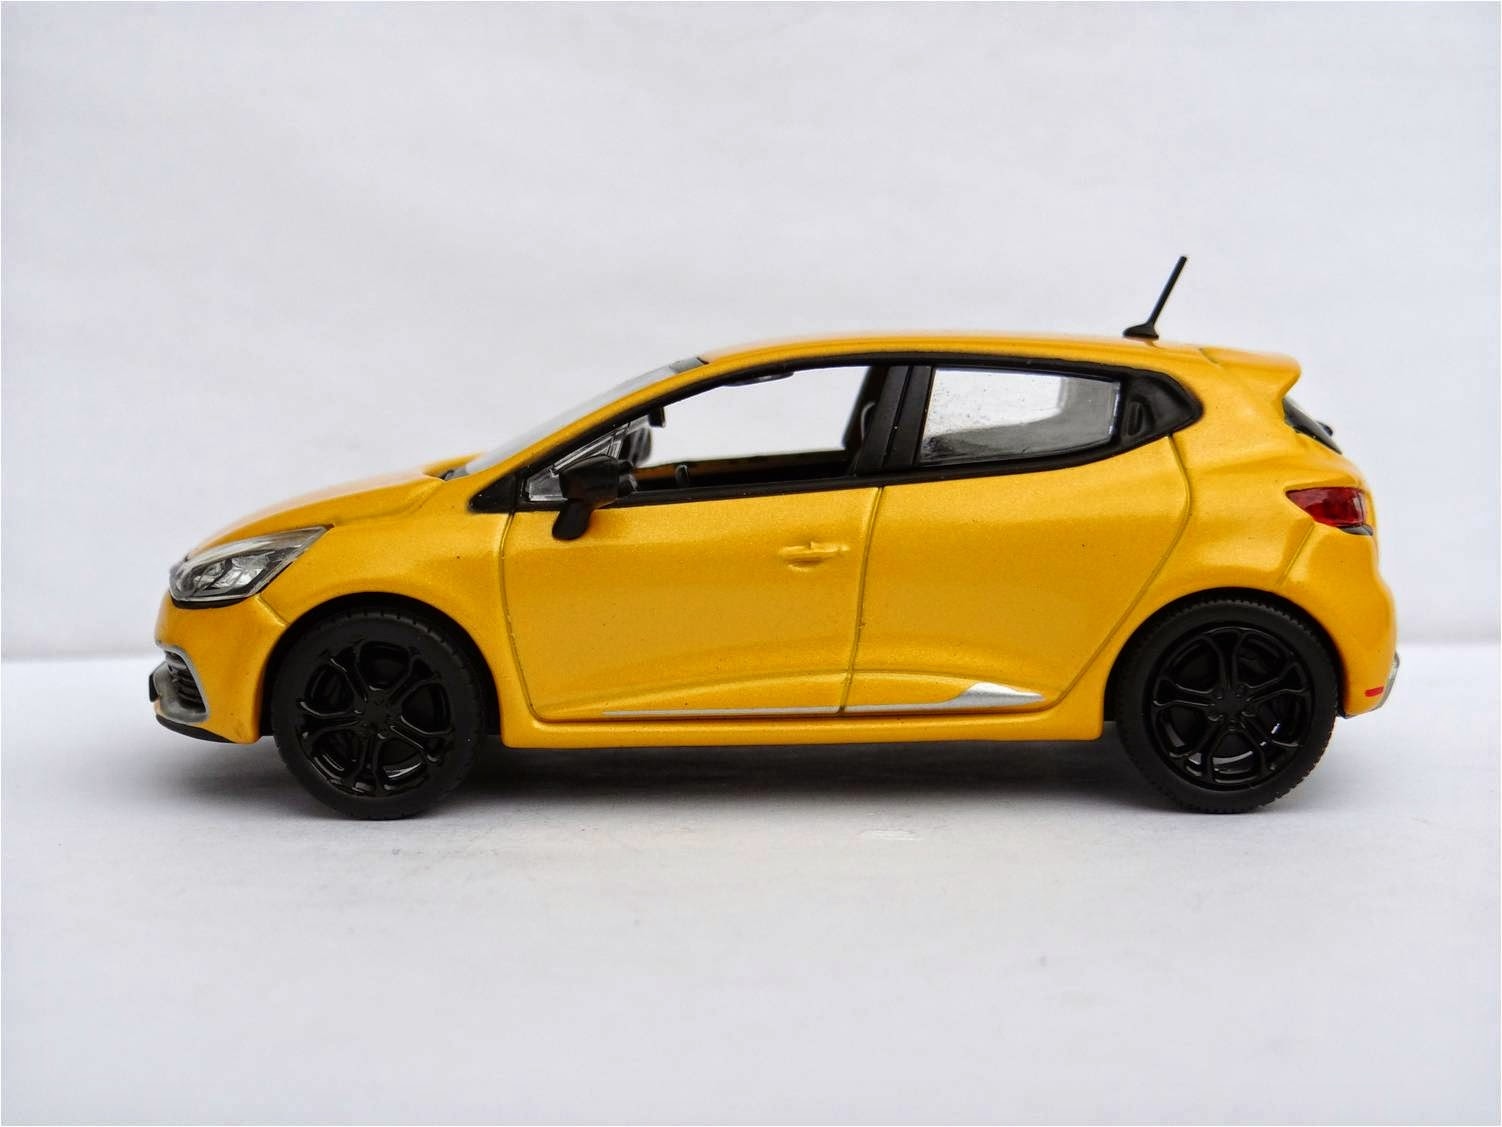 Speed dating renault clio rs